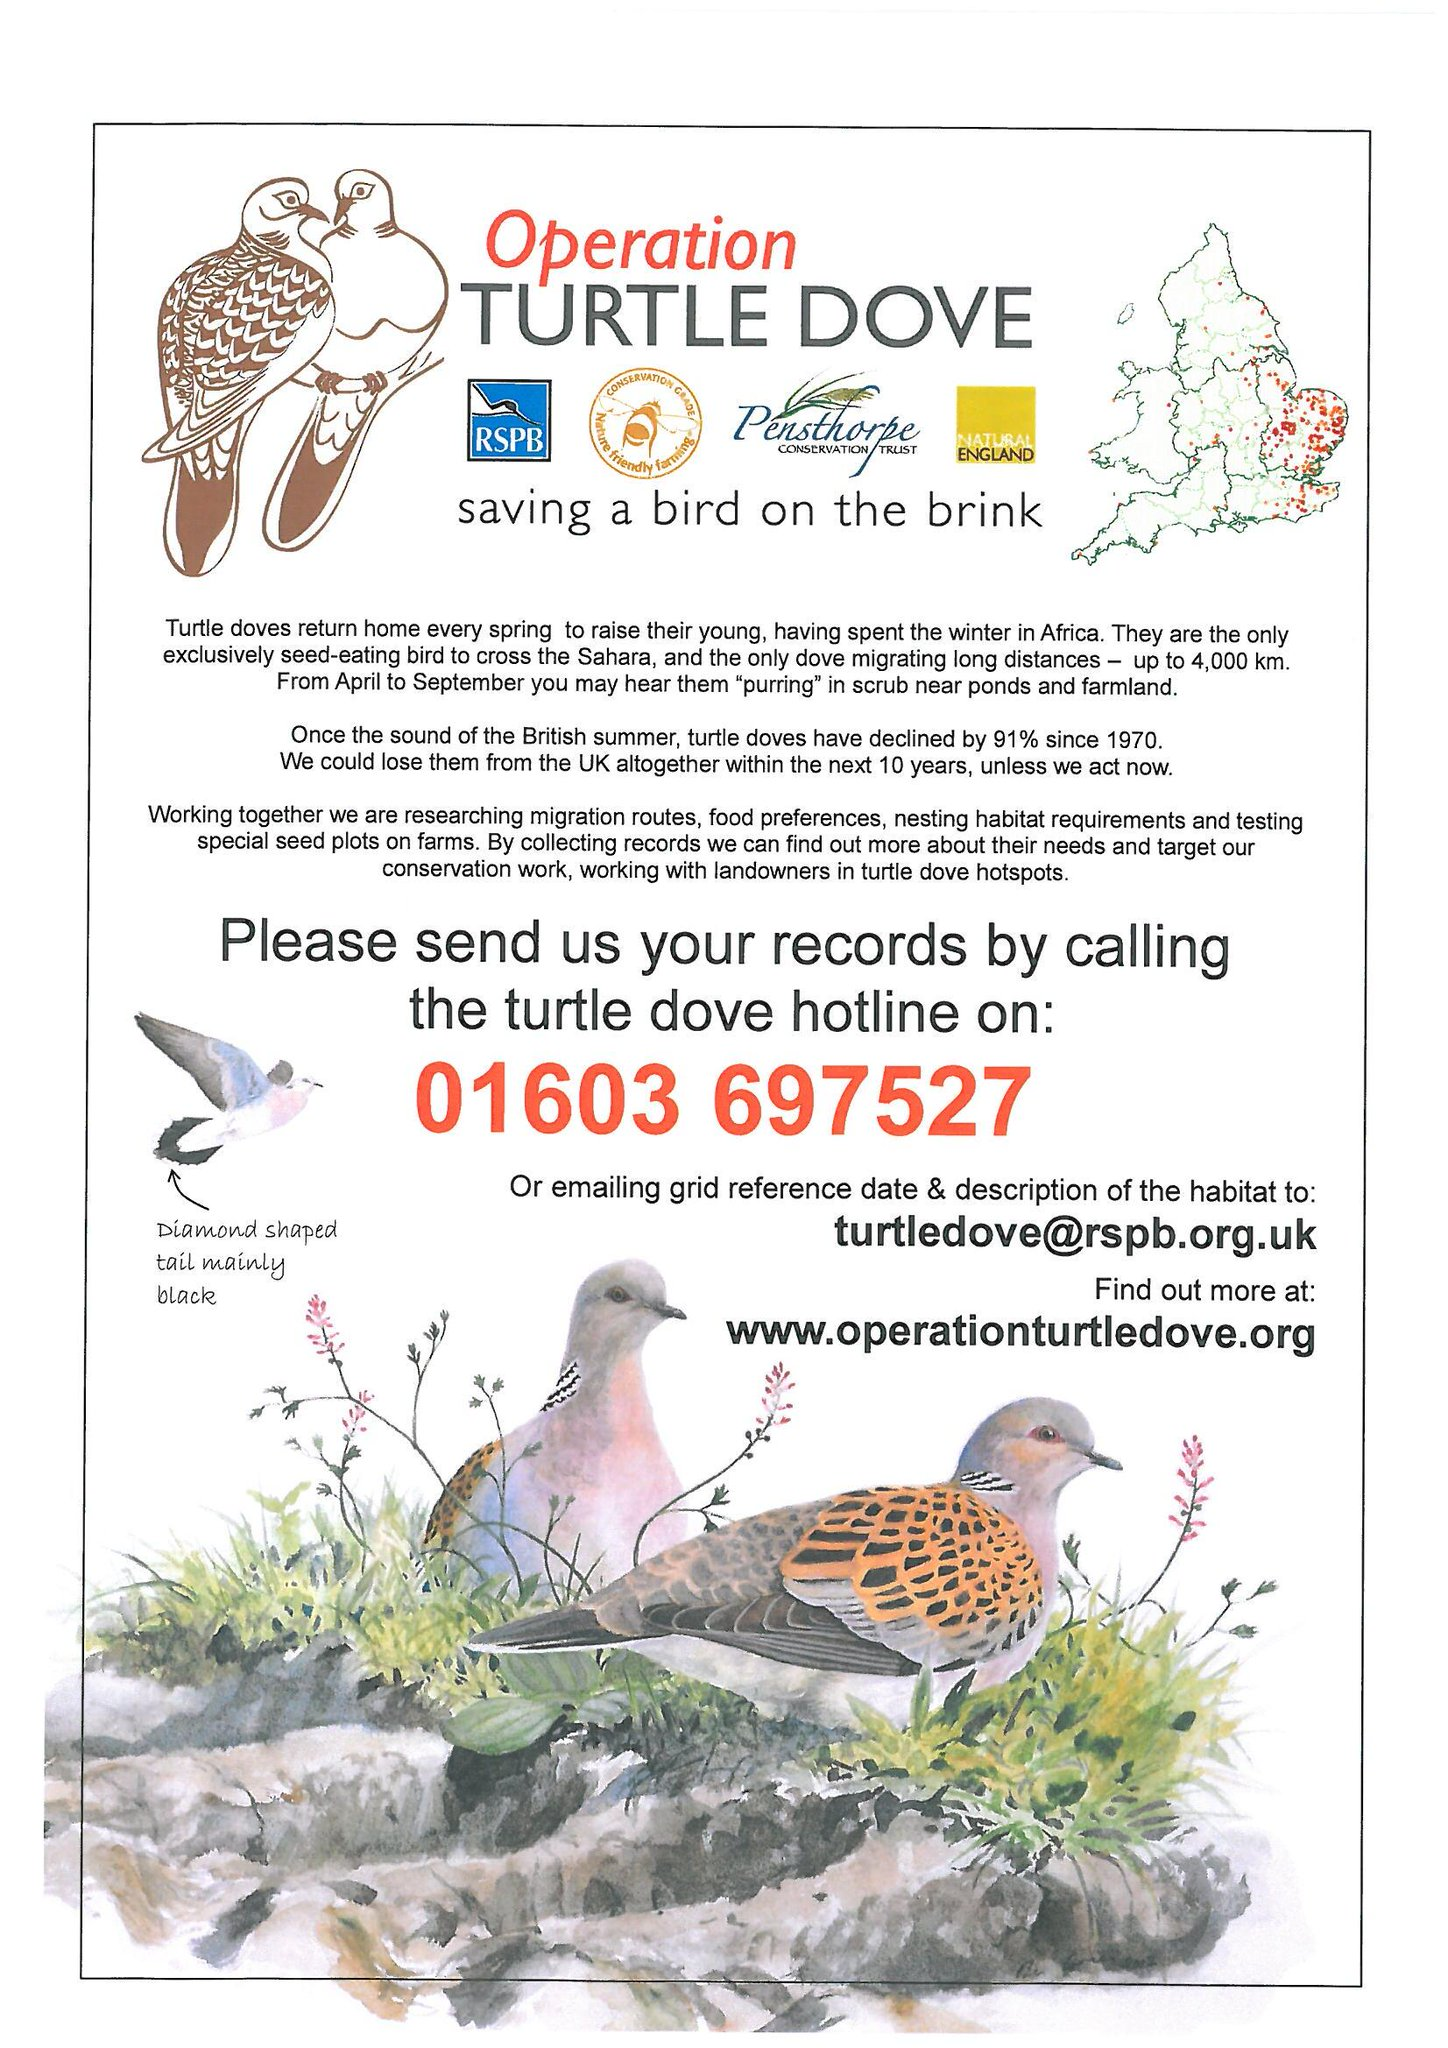 RT @Pensthorpe: Can you help us in the race to save the Turtle Dove? @Natures_Voice @naturefriendly @NaturalEngland http://t.co/EaufauWZ2c